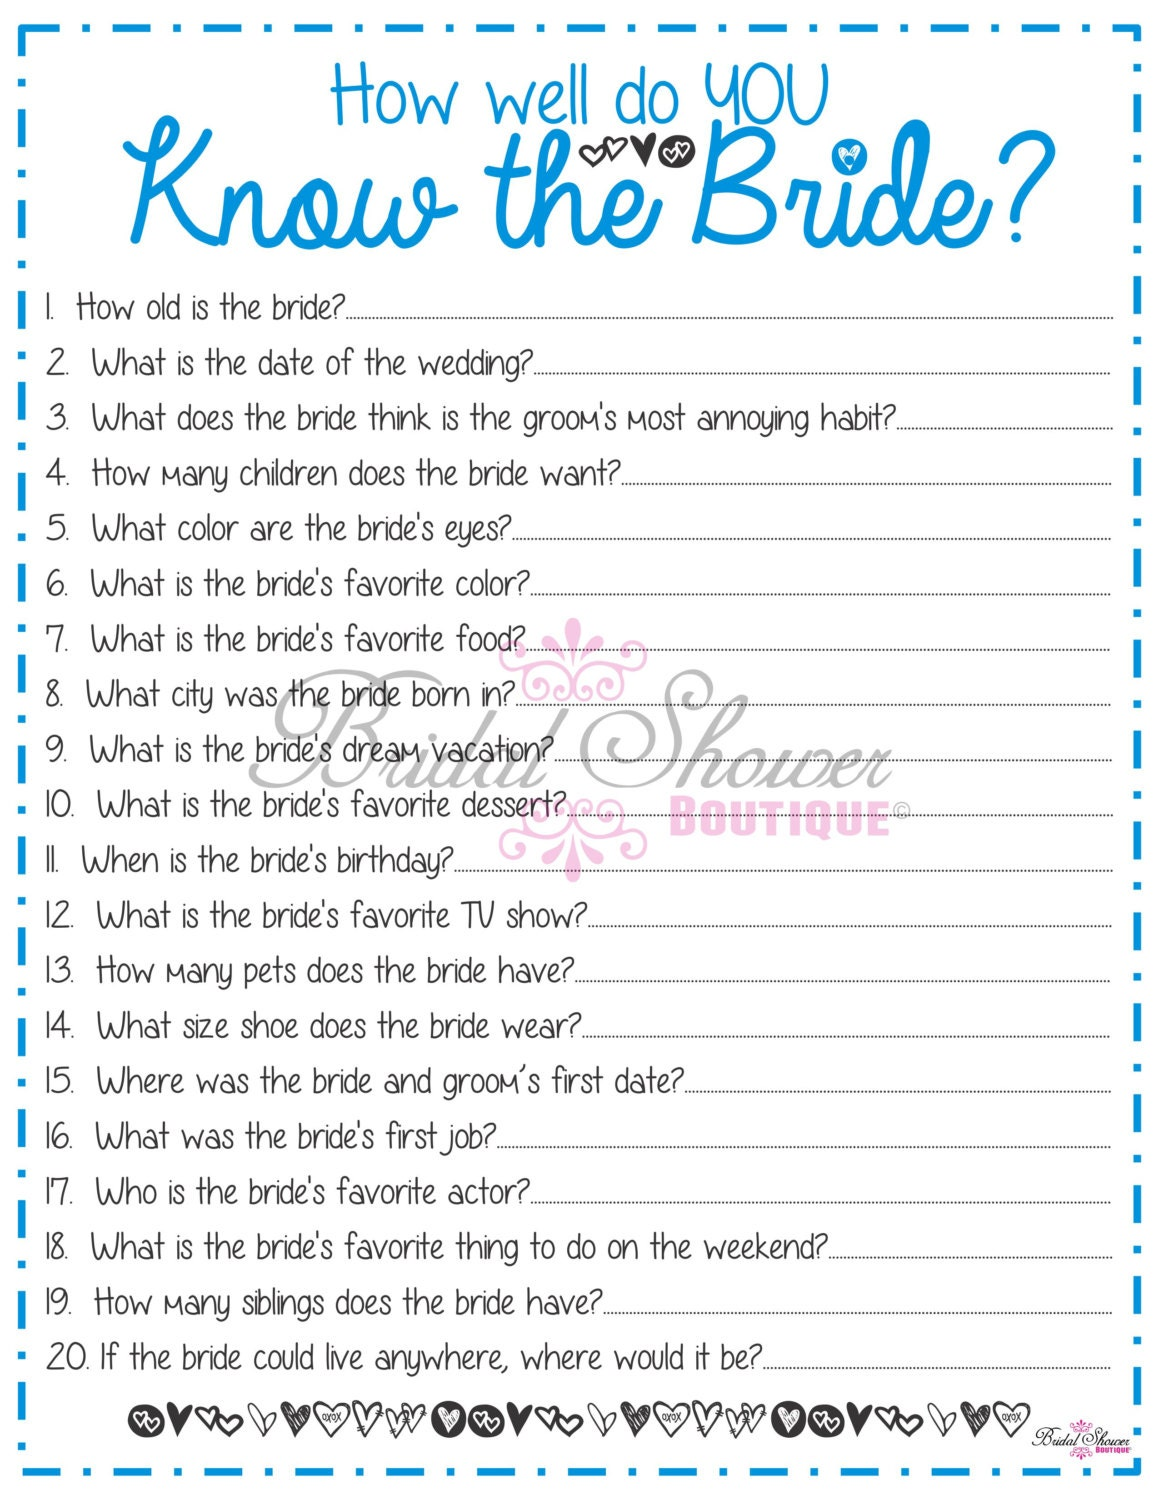 How Well Do You Know The Bride: How Well Do You Know The Bride Bridal Shower Game BLUE Fun